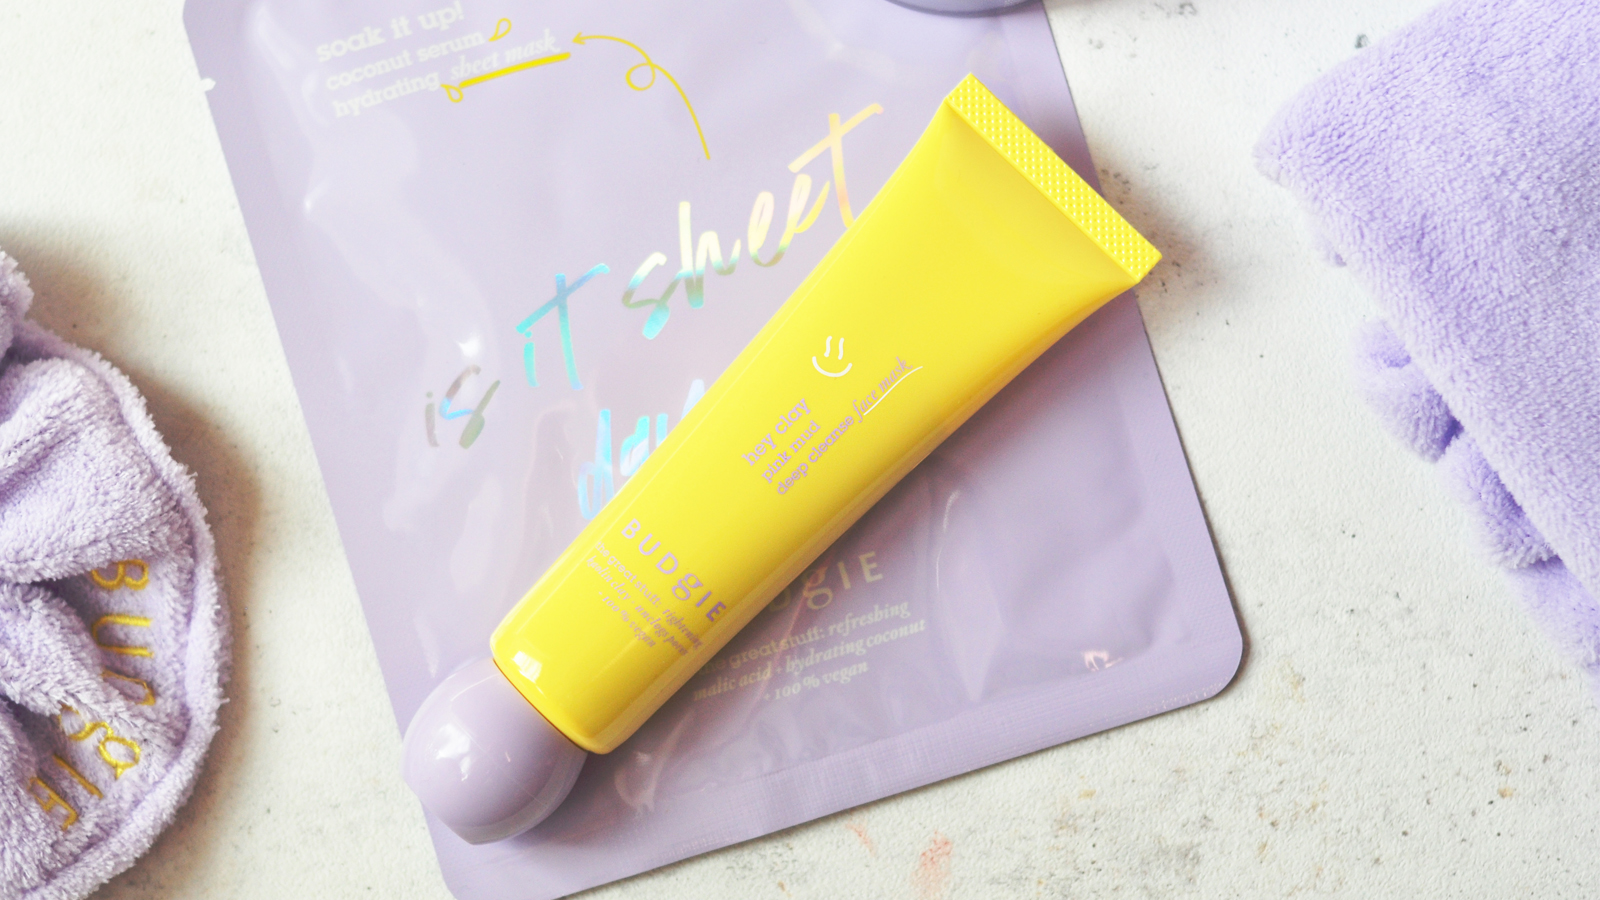 Budgie Hey Clay Deep Cleansing Mask